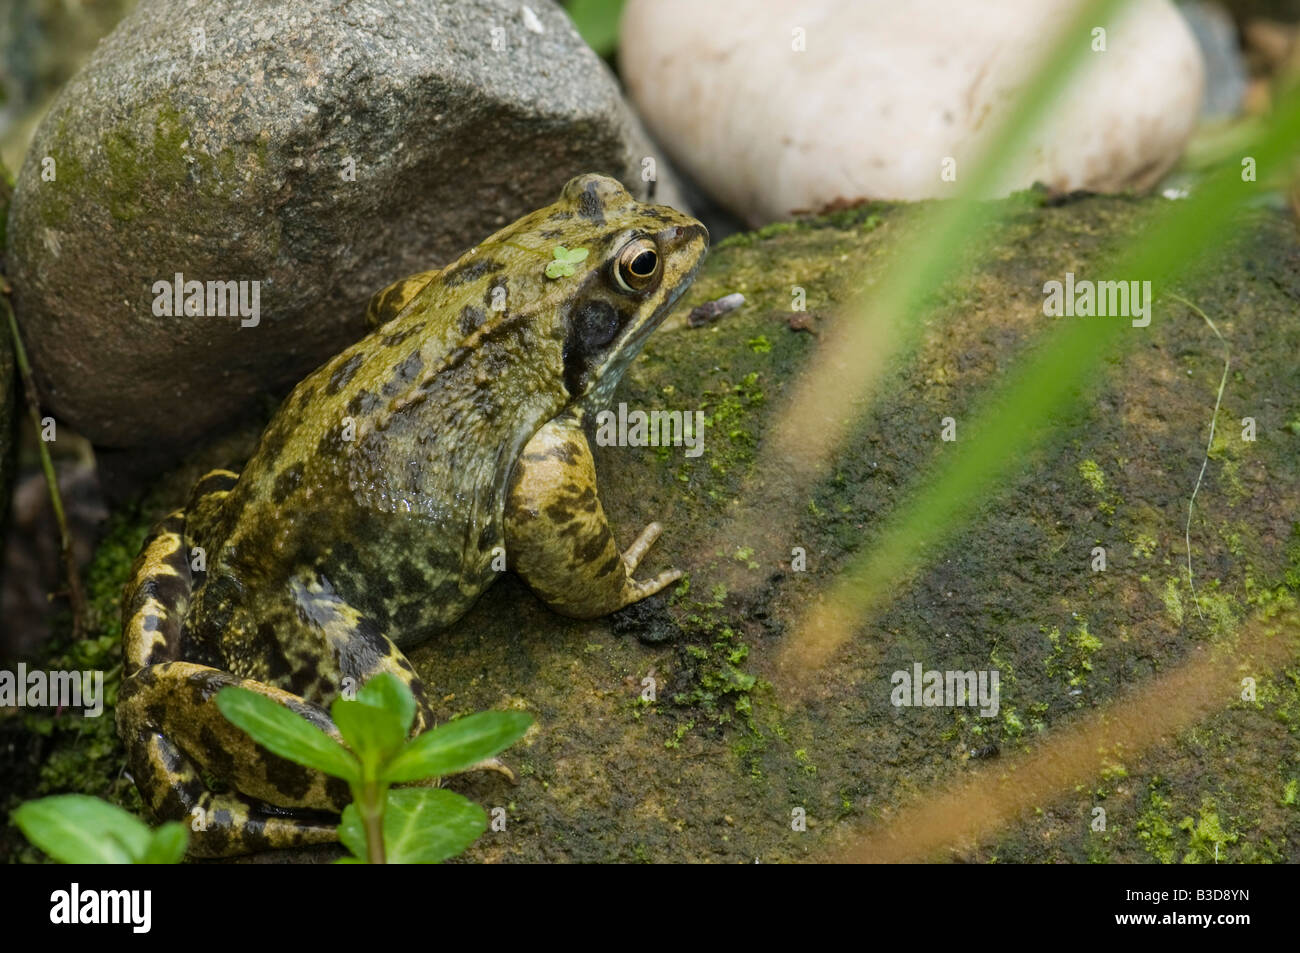 A female common frog Rana temporaria in a freshwater wildlife pond - Stock Image